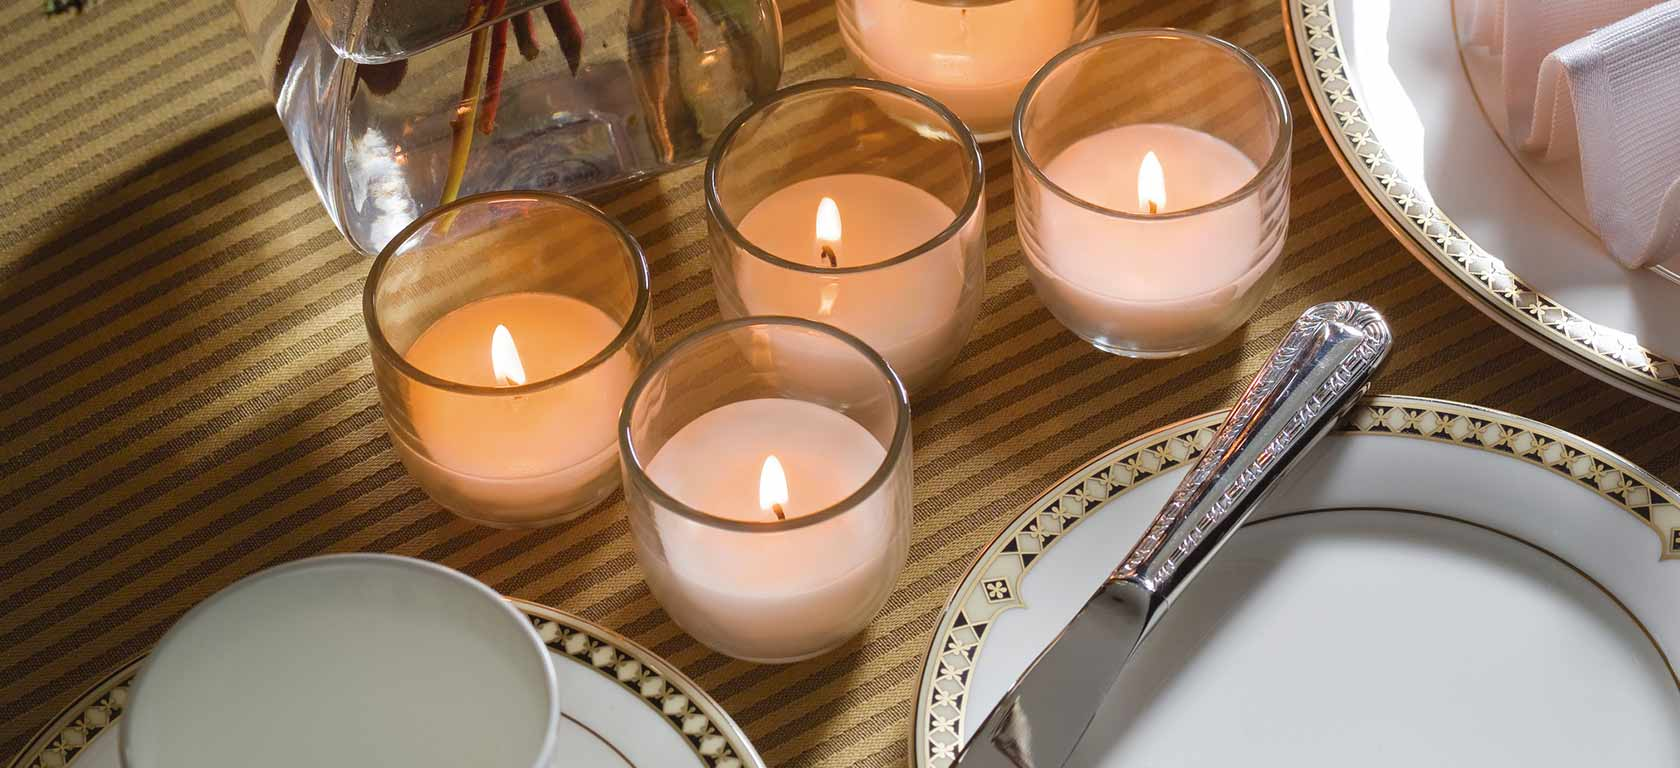 Delicate glass votives glowing warmly.